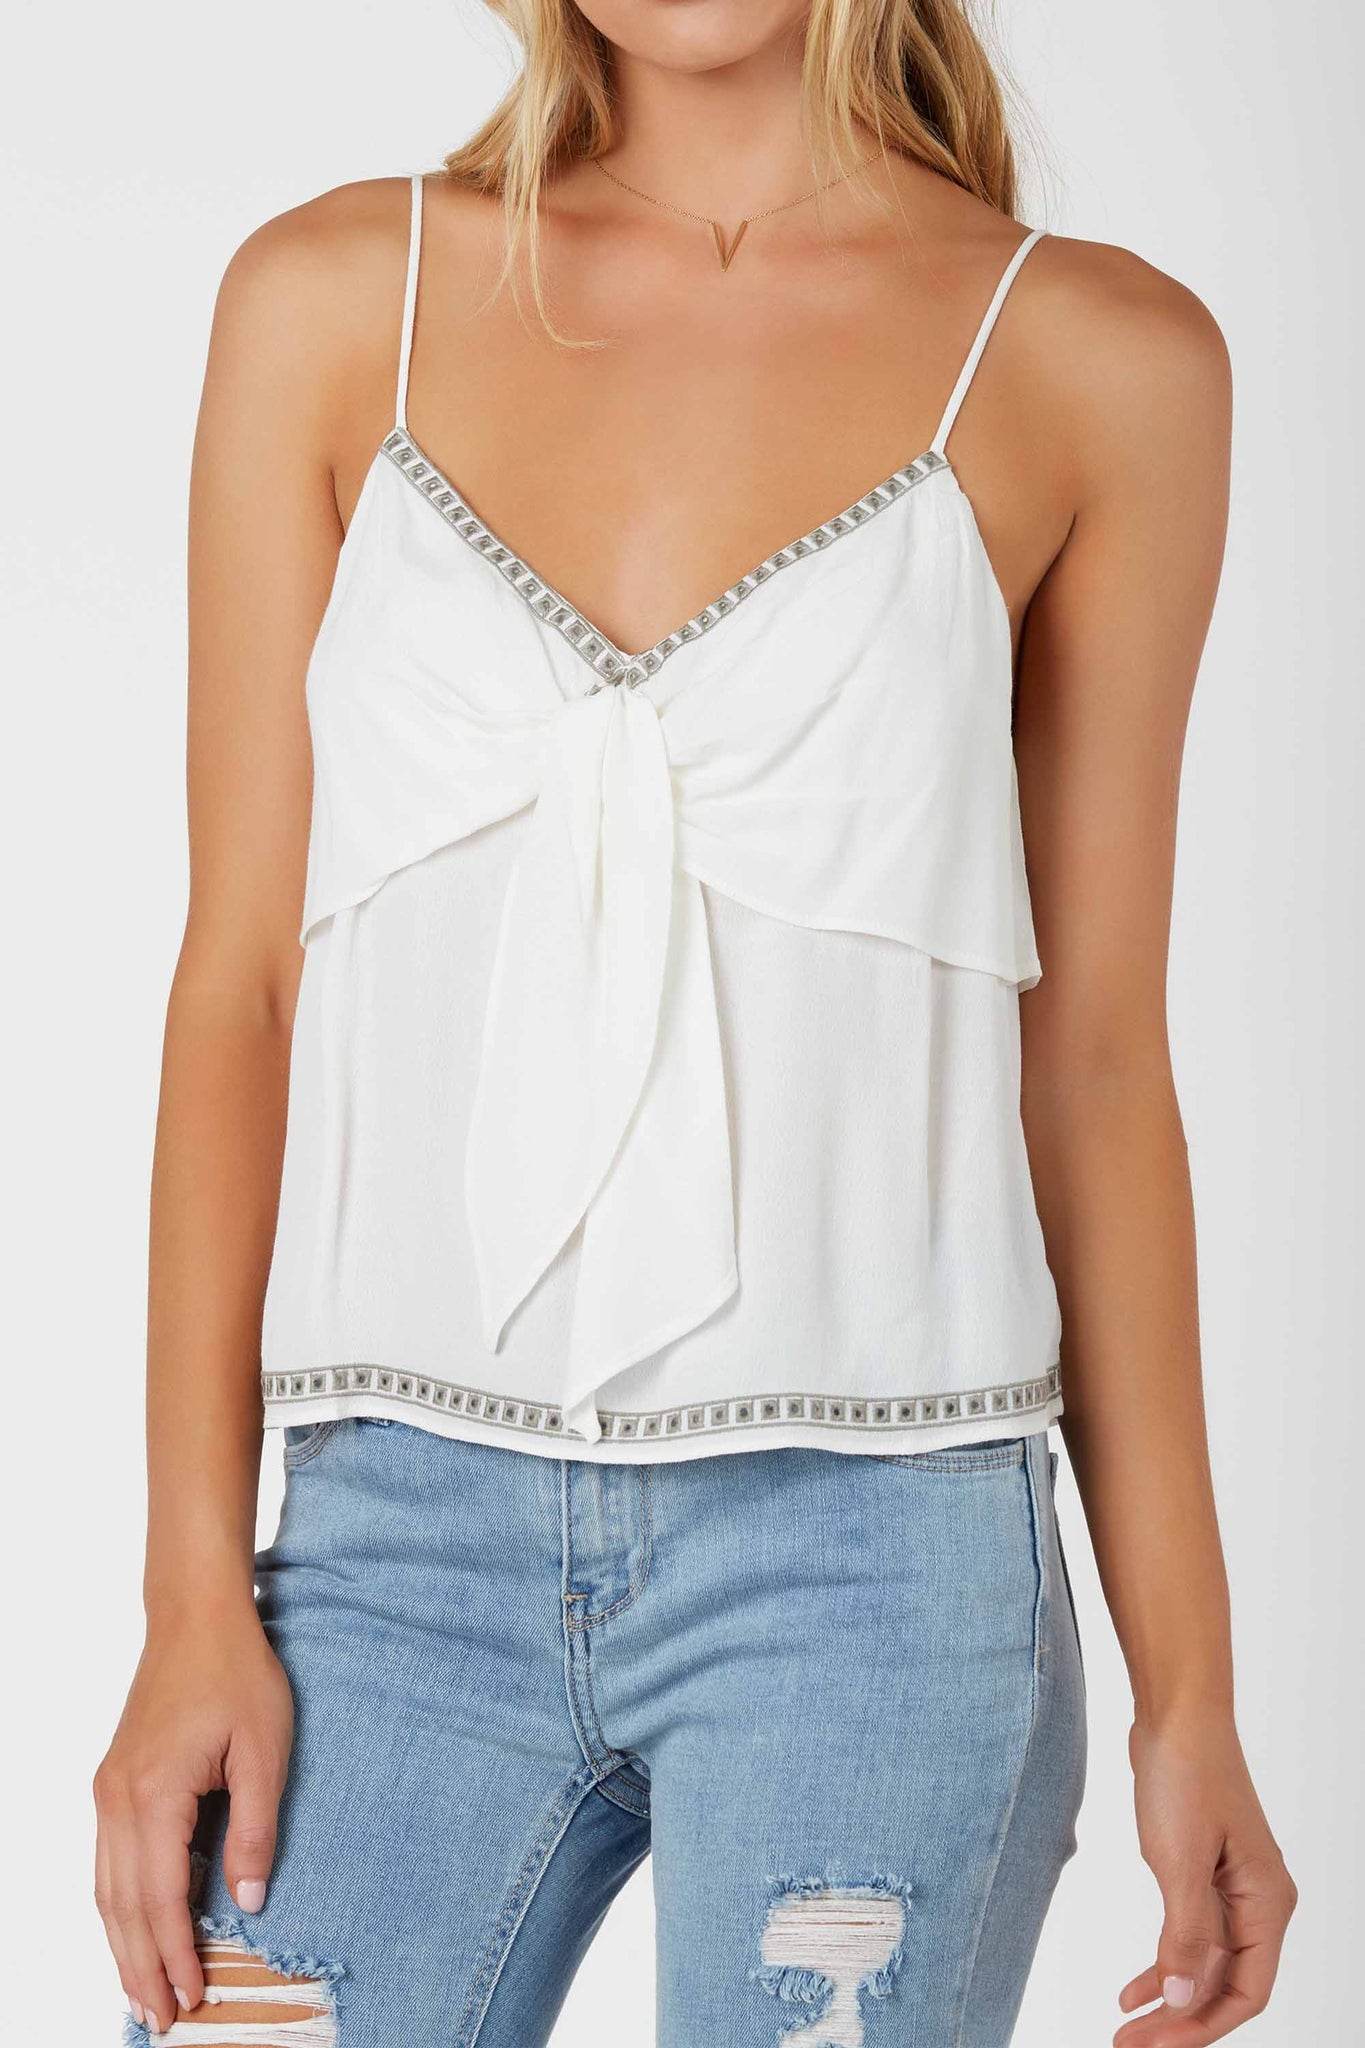 Lightweight spaghetti strap cami with V-neckline and tiered design. Front tie and embroidered trim detailing.